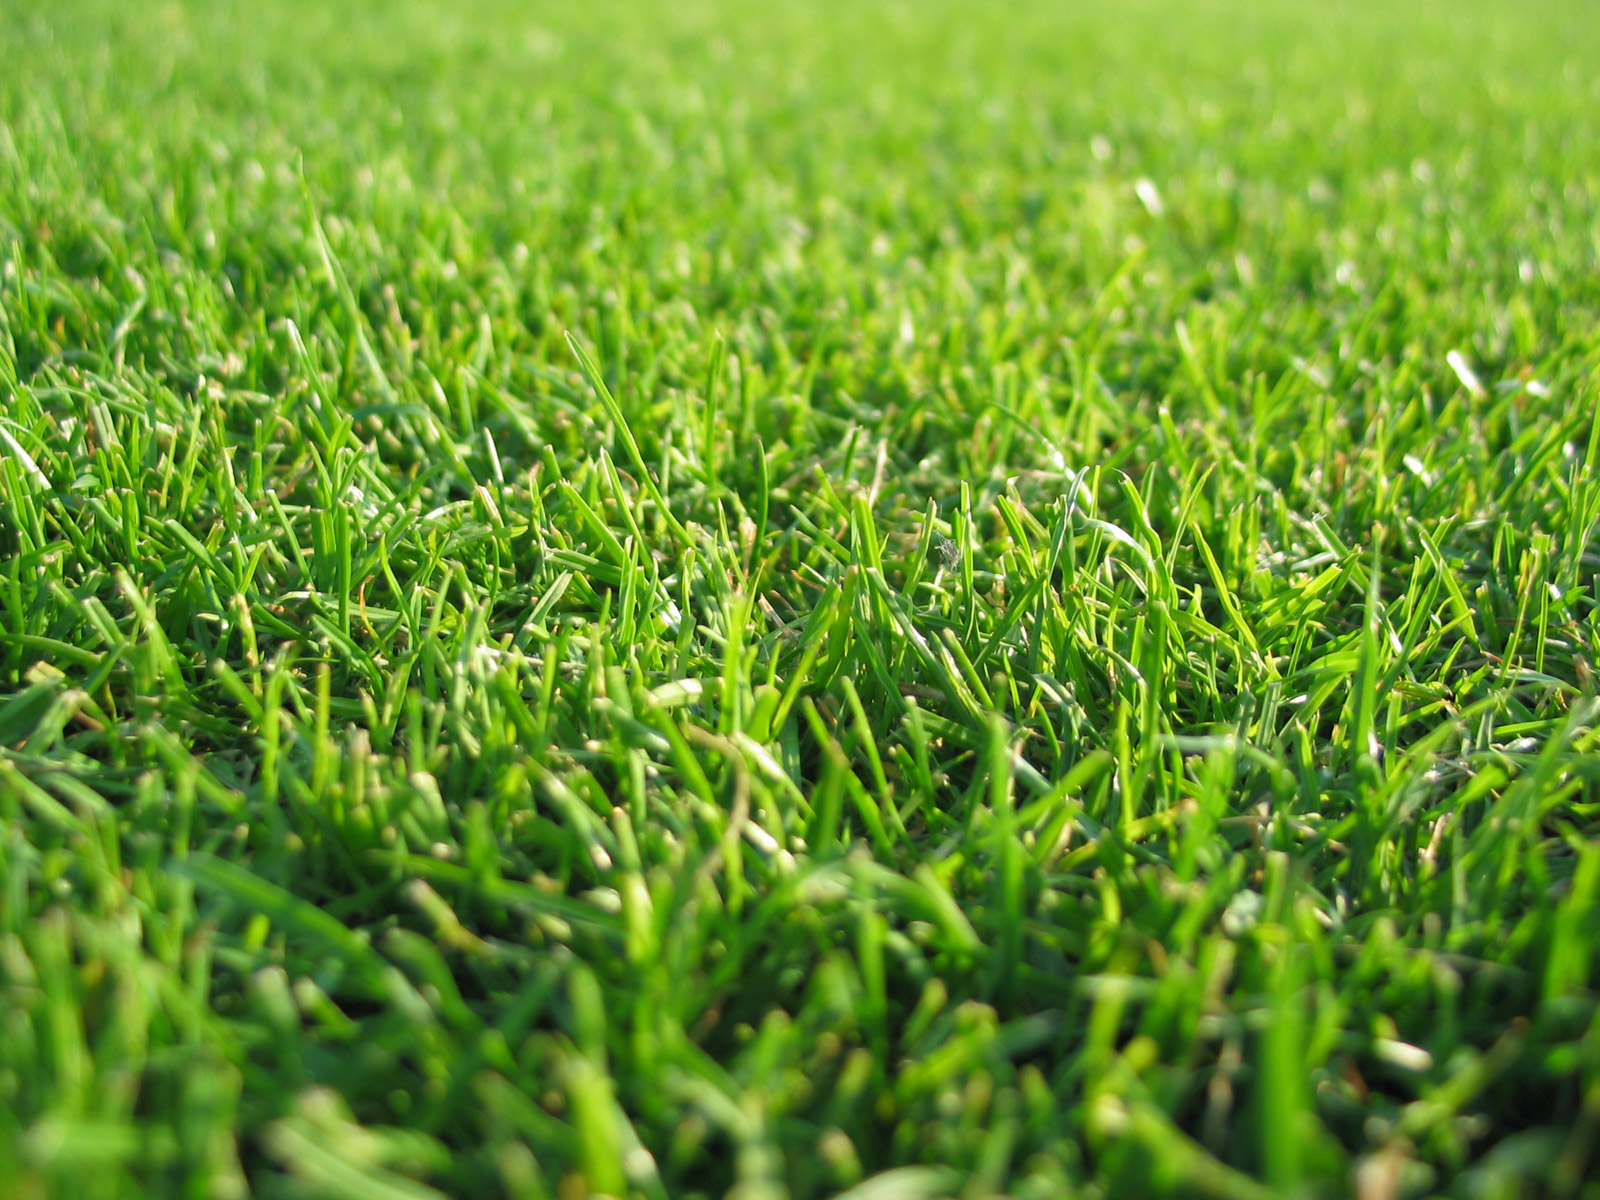 Grass wallpapers hd beautiful cool wallpapers for Pretty grass